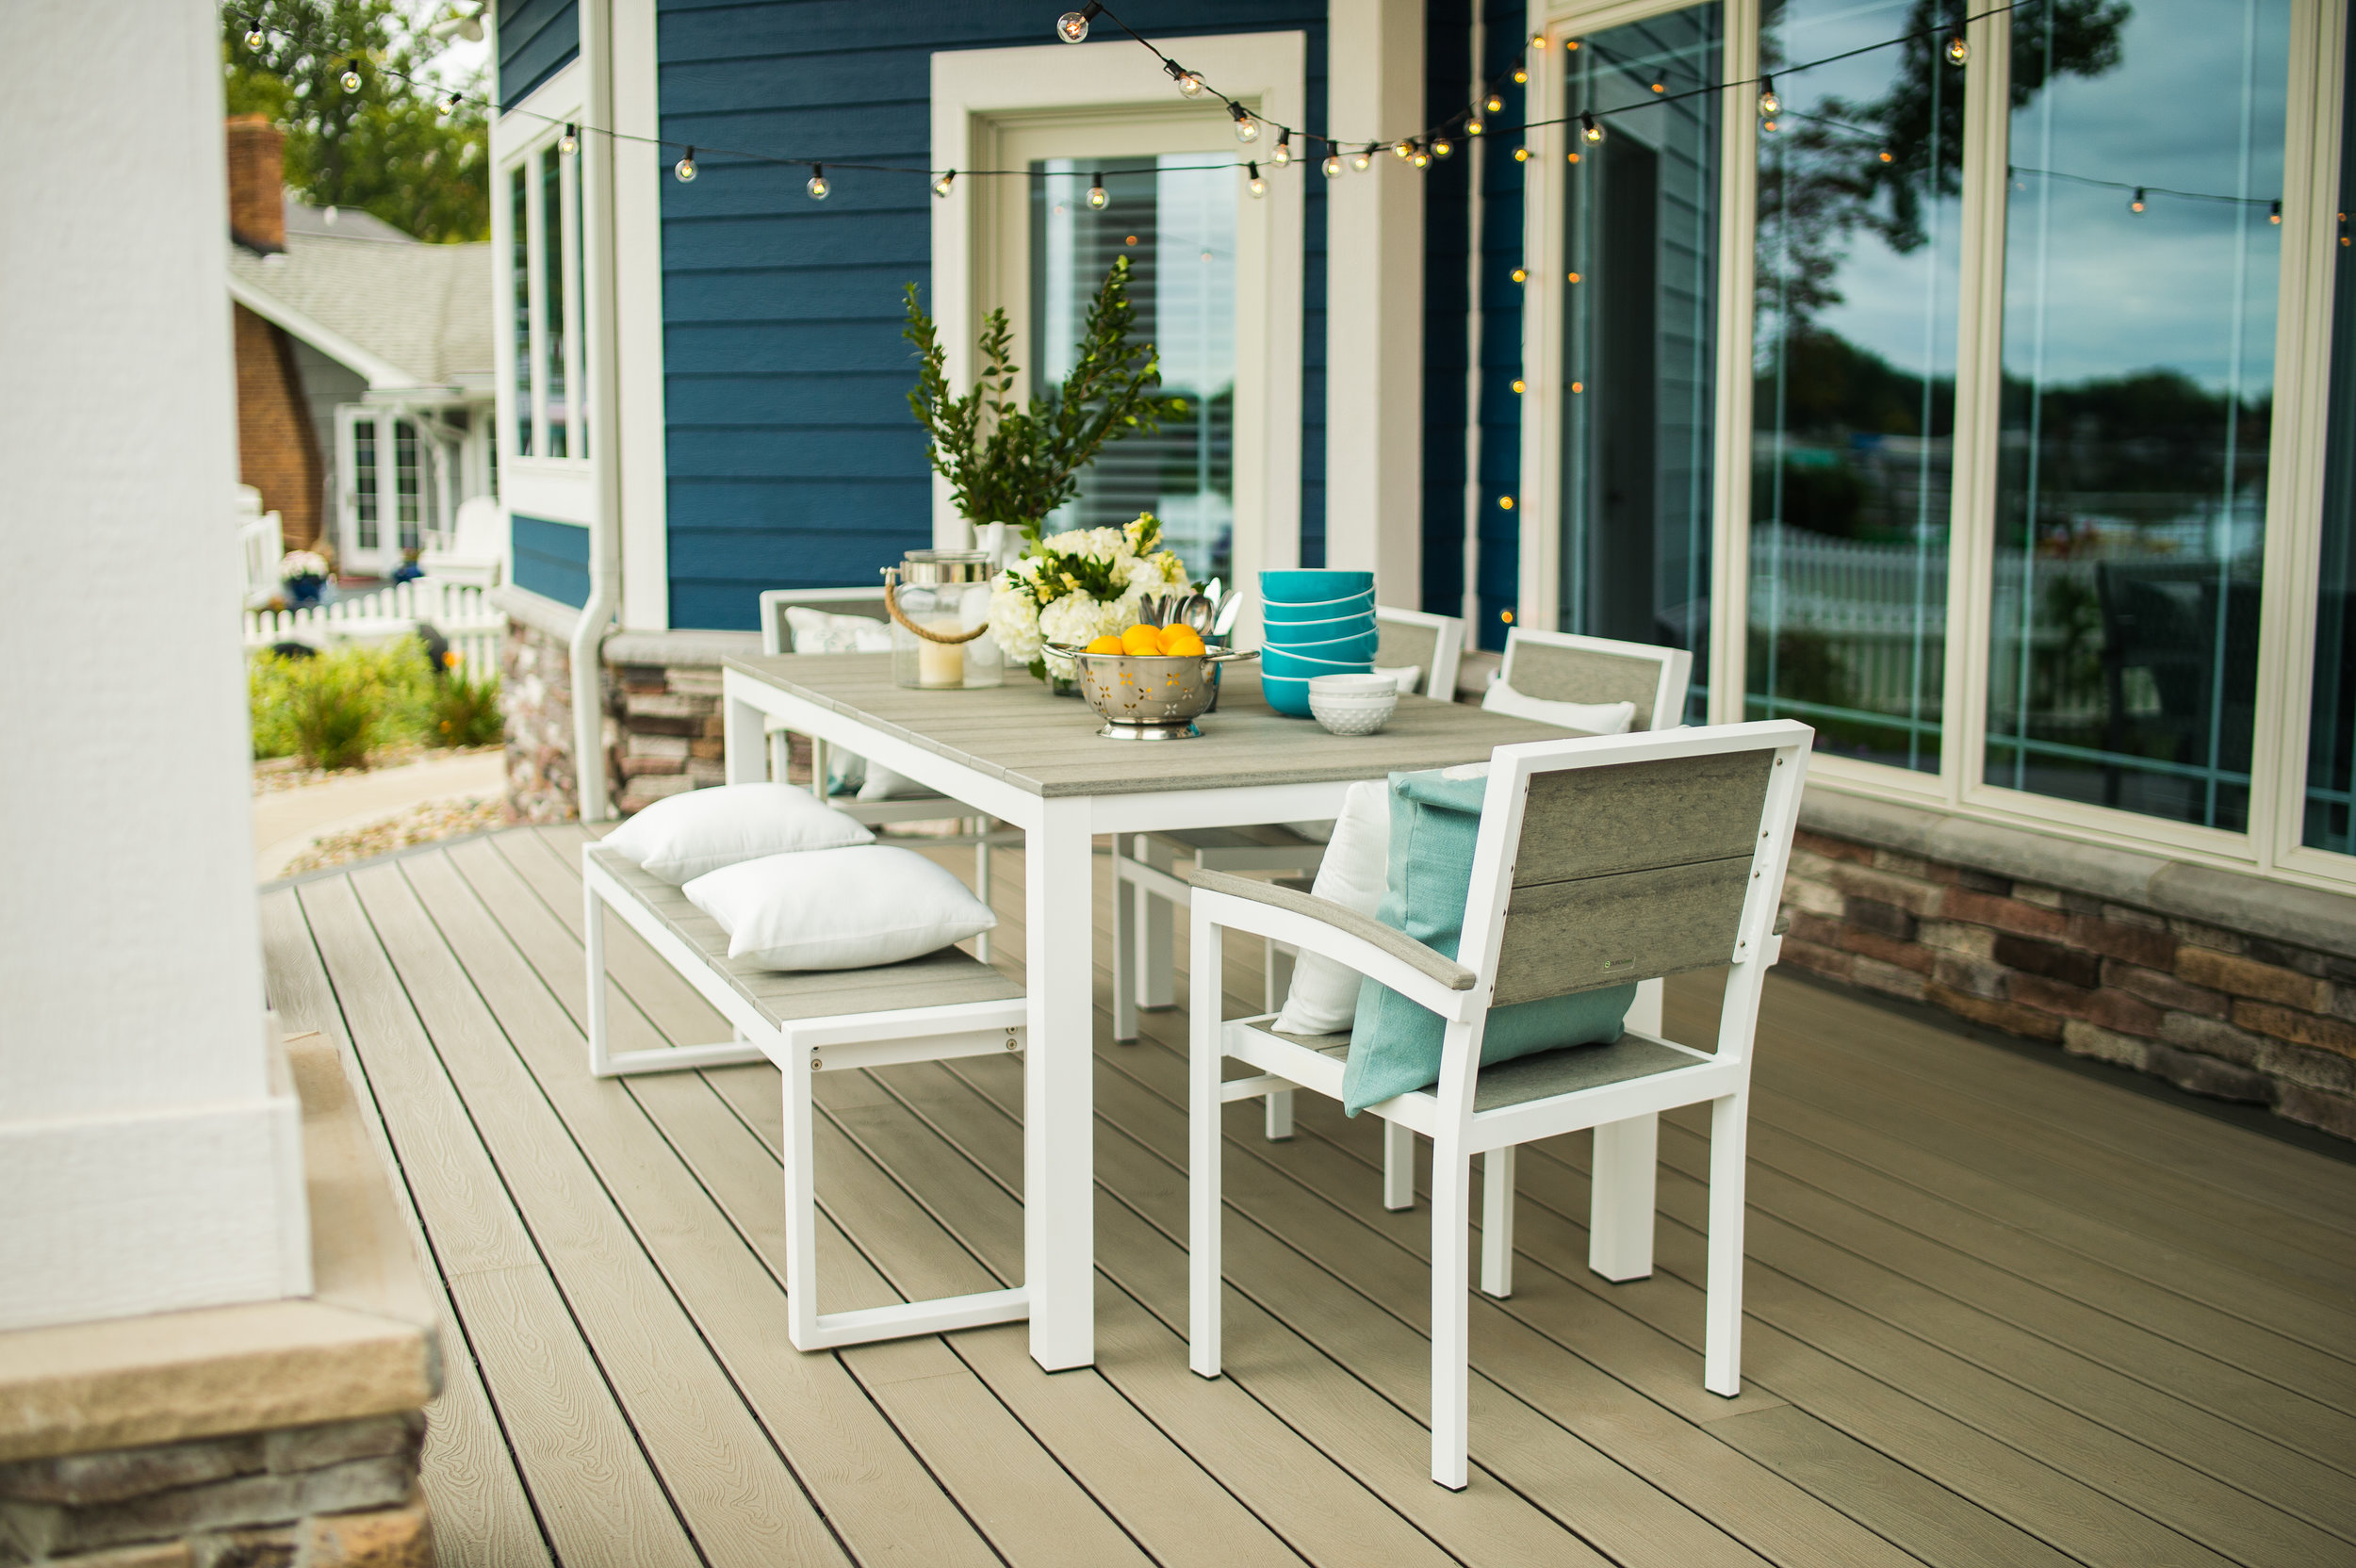 Park City - Bring the family together for outdoor picnics, summer chats, and board games under the stars with the Park City Modern Outdoor Dining Collection. This modern outdoor dining collection is made with a durable, open-style powder-coated aluminum frame, which is available in three beautiful color options. Choose between textured black, gloss silver, and textured white for an outdoor dining set that perfectly matches your landscaping and decor. The cozy outdoor dining side chairs,arm chairs, and benches along with the sleek tabletop are made with premium HDPE slats and accentuated with a gorgeous, natural wood grain. This set delivers the authentic wood look that you want with the all-weather durability that you need for years of happy outdoor memories to come. You'll love this collection for its simplicity and custom options.